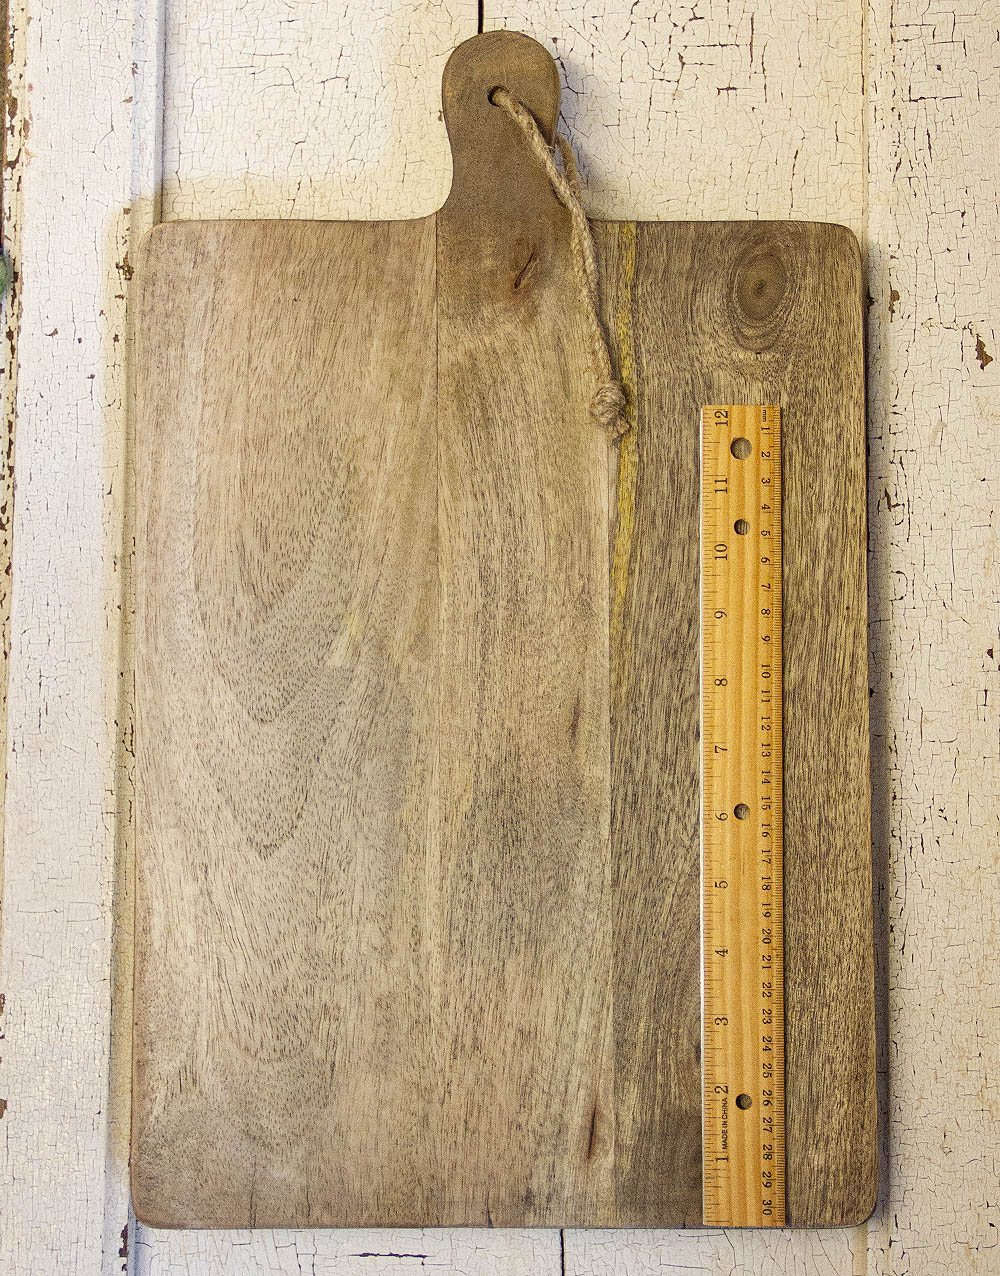 wood board with ruler